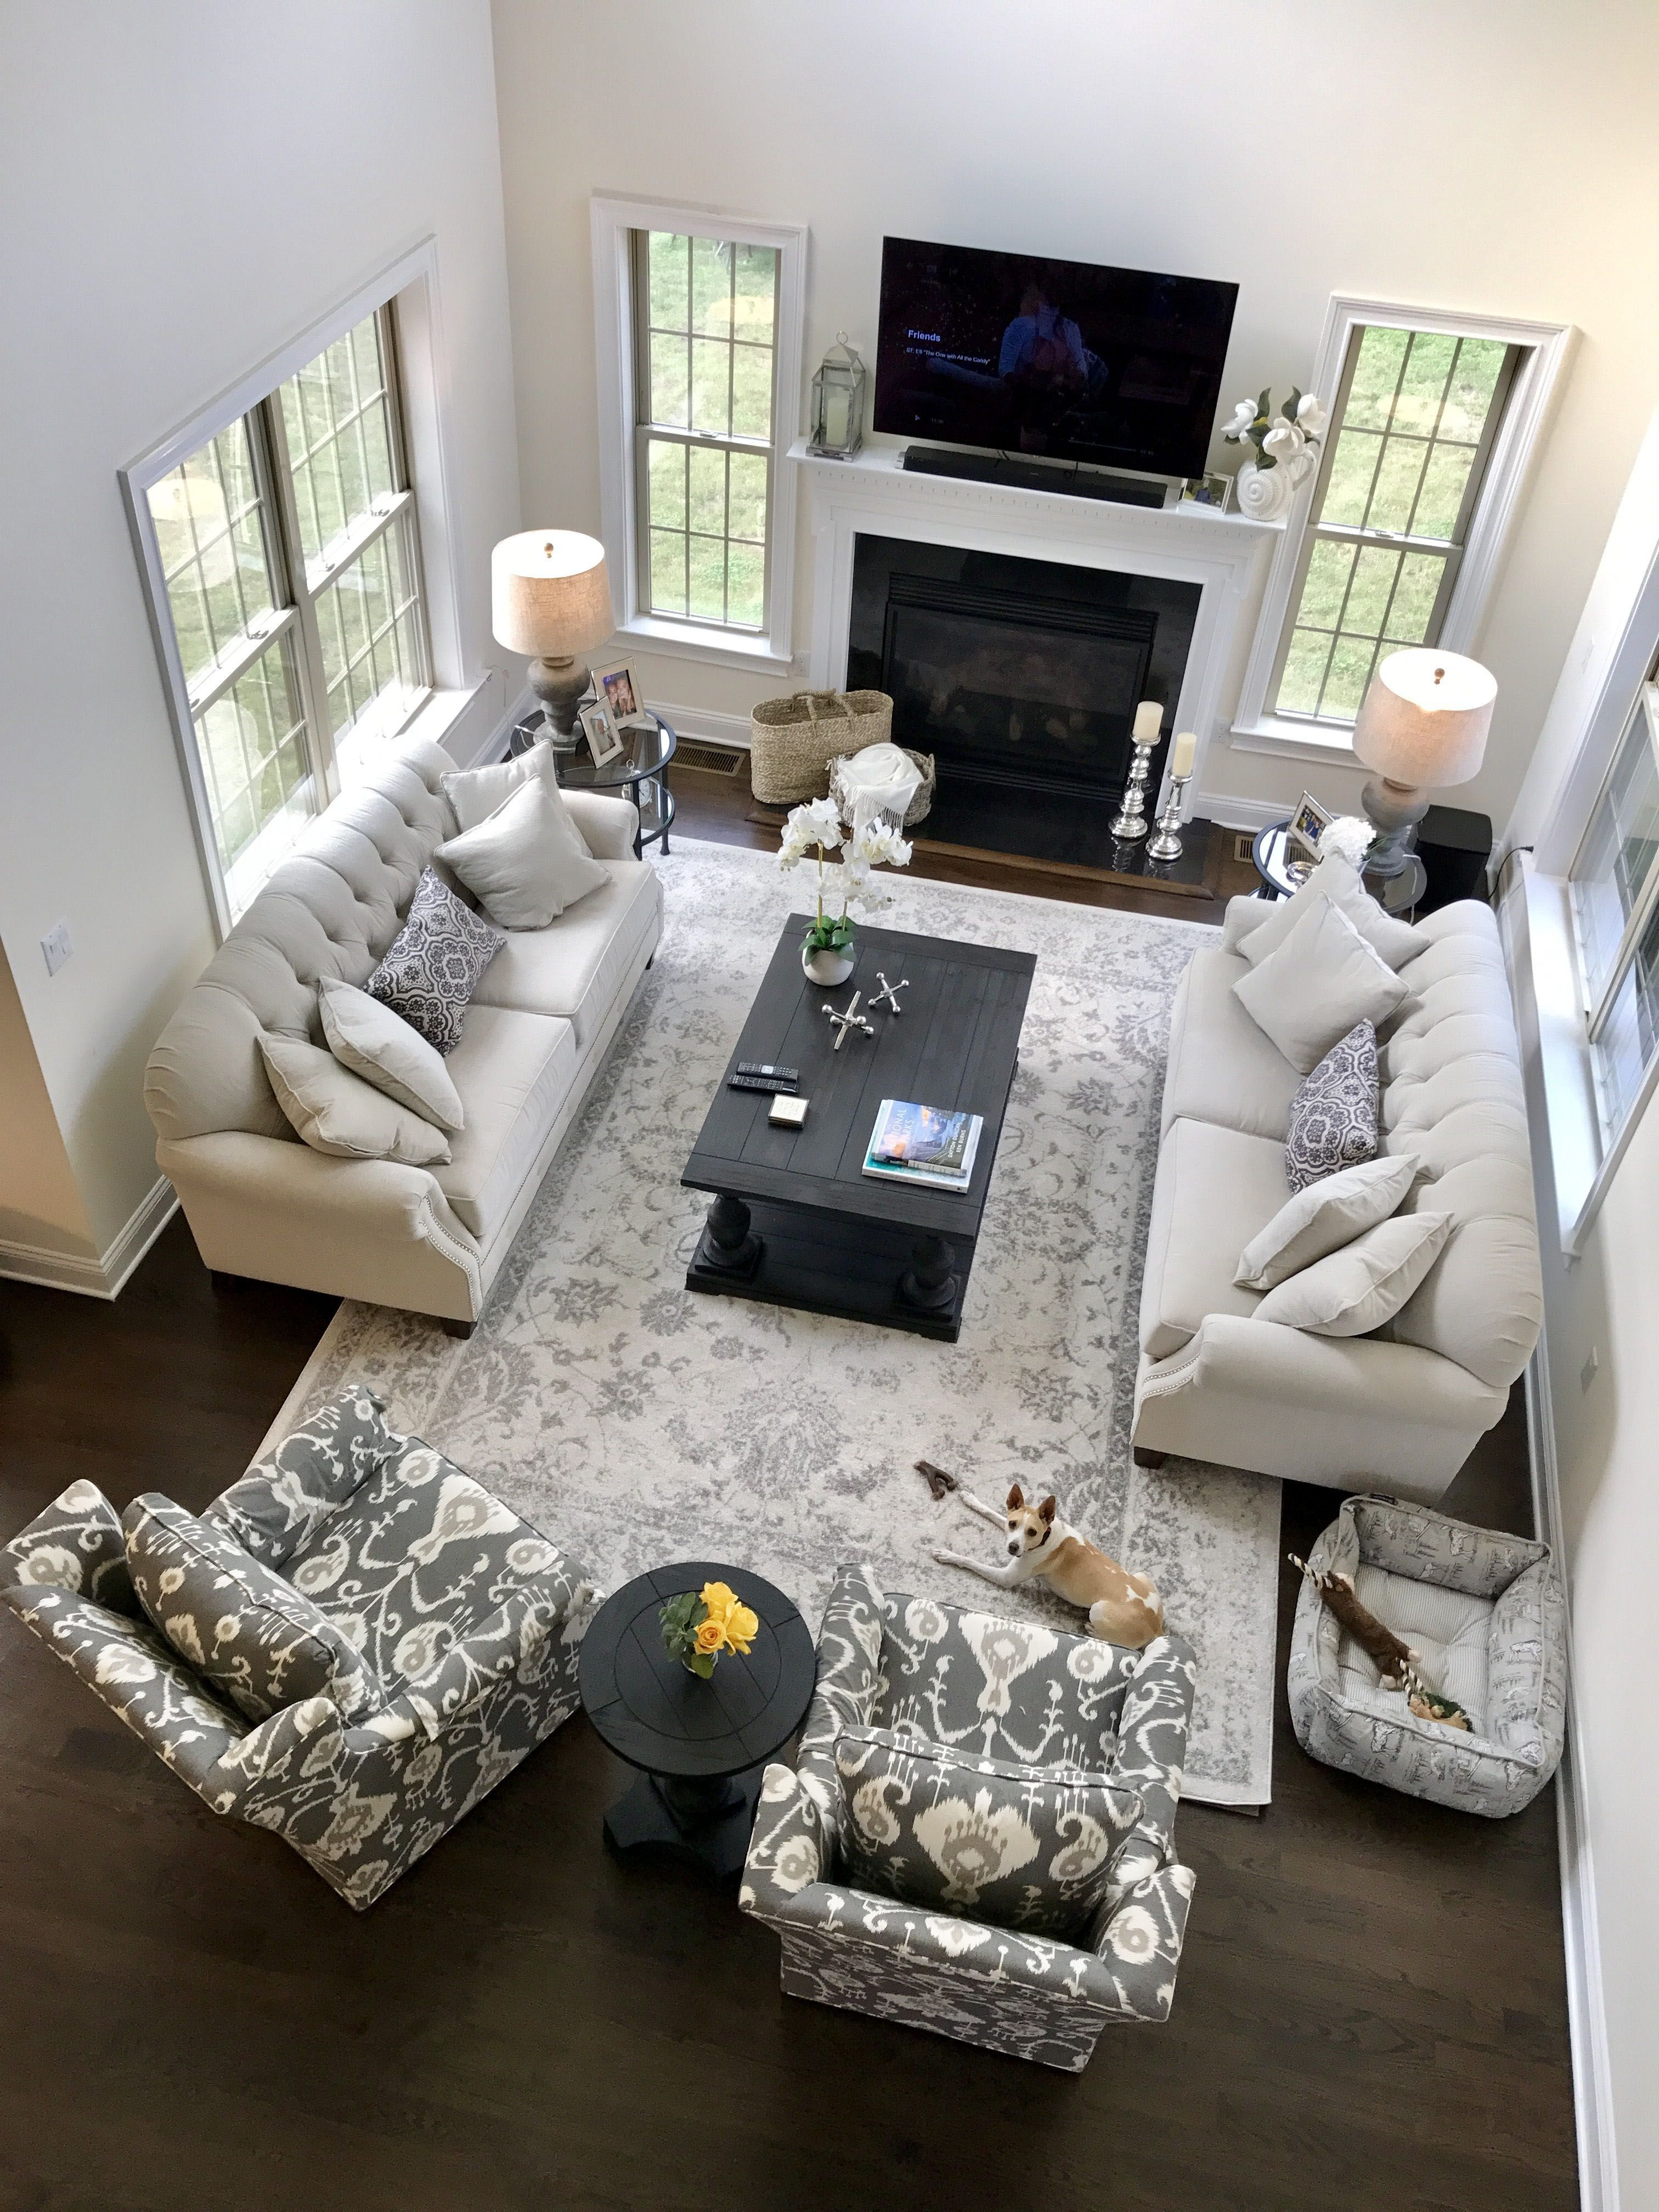 New living room sets bernie and phyls exclusive on interioropedia